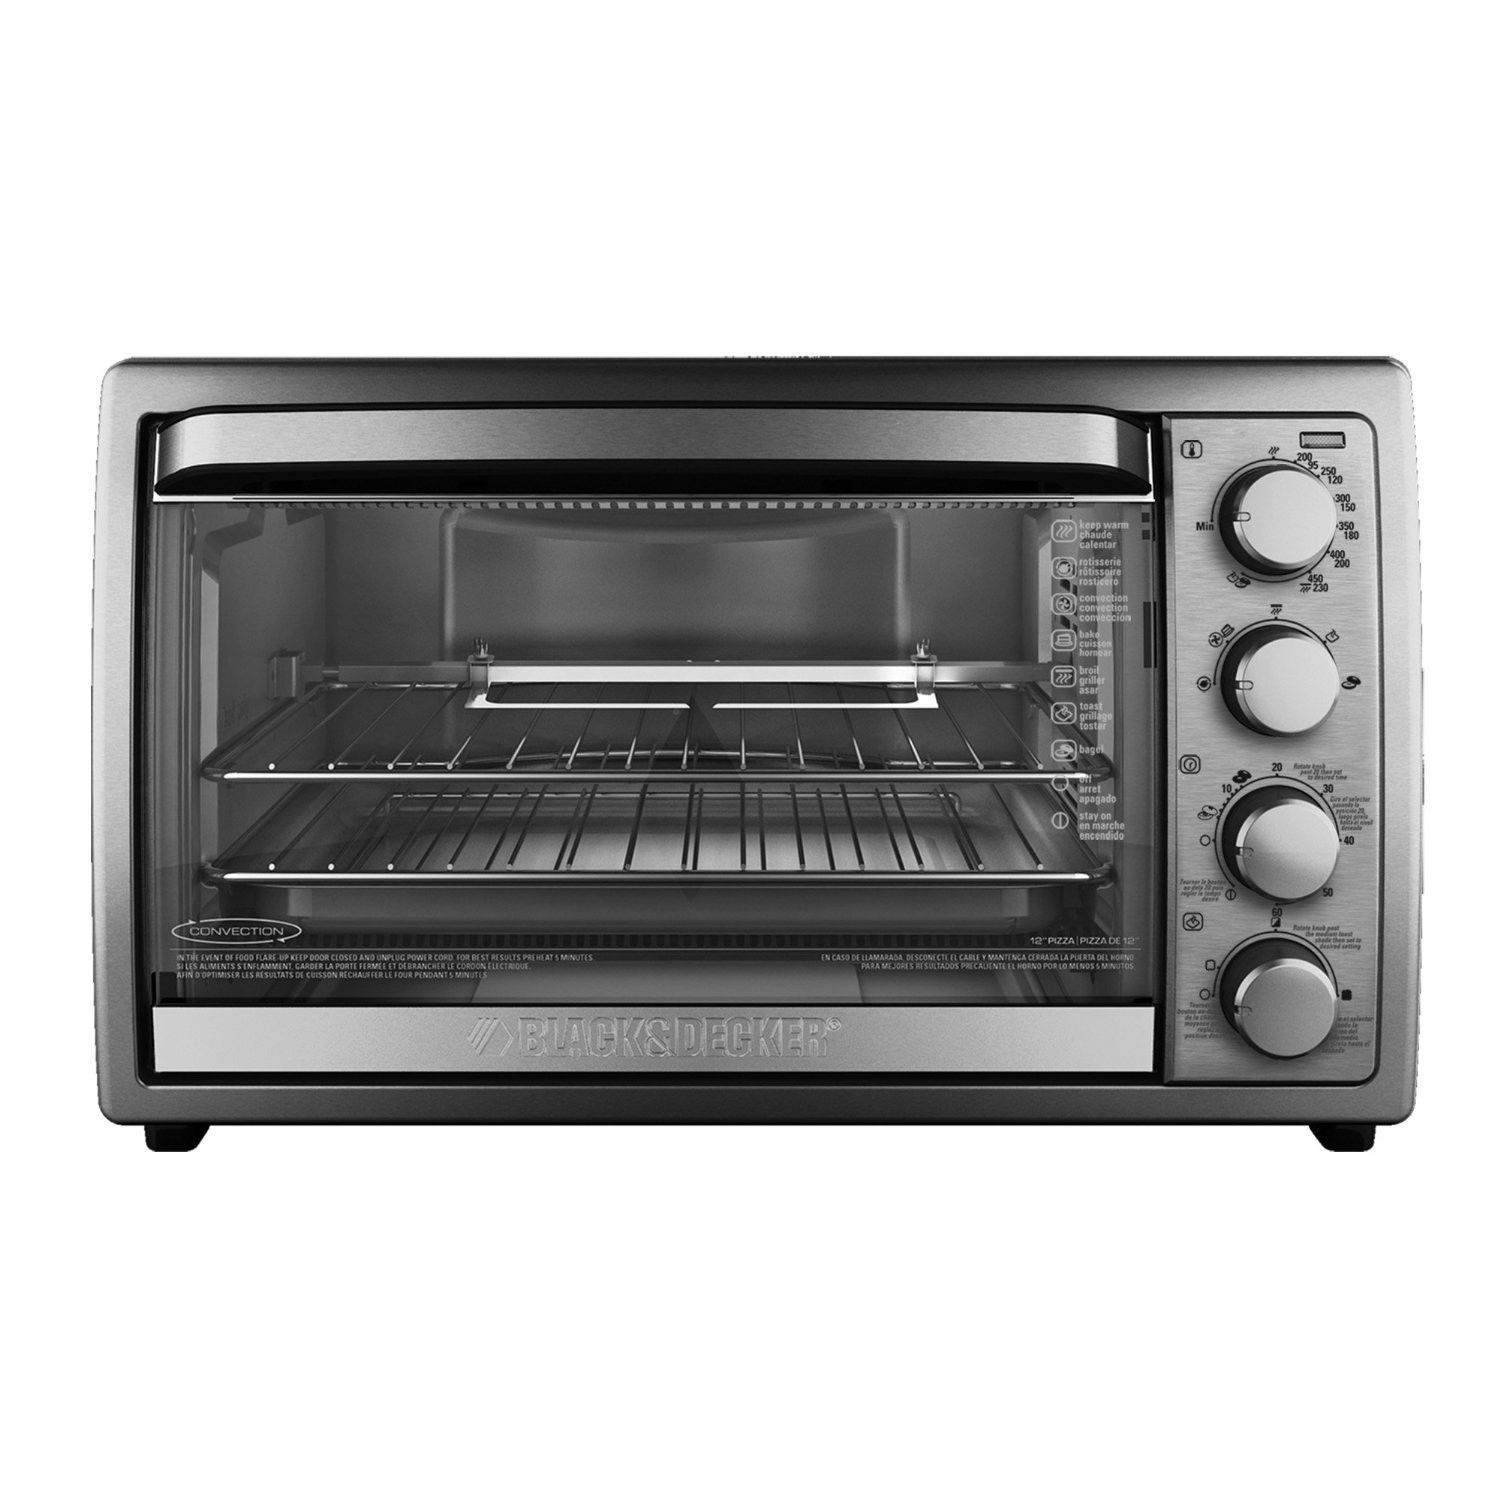 Convection rotisserie oven convection toaster oven